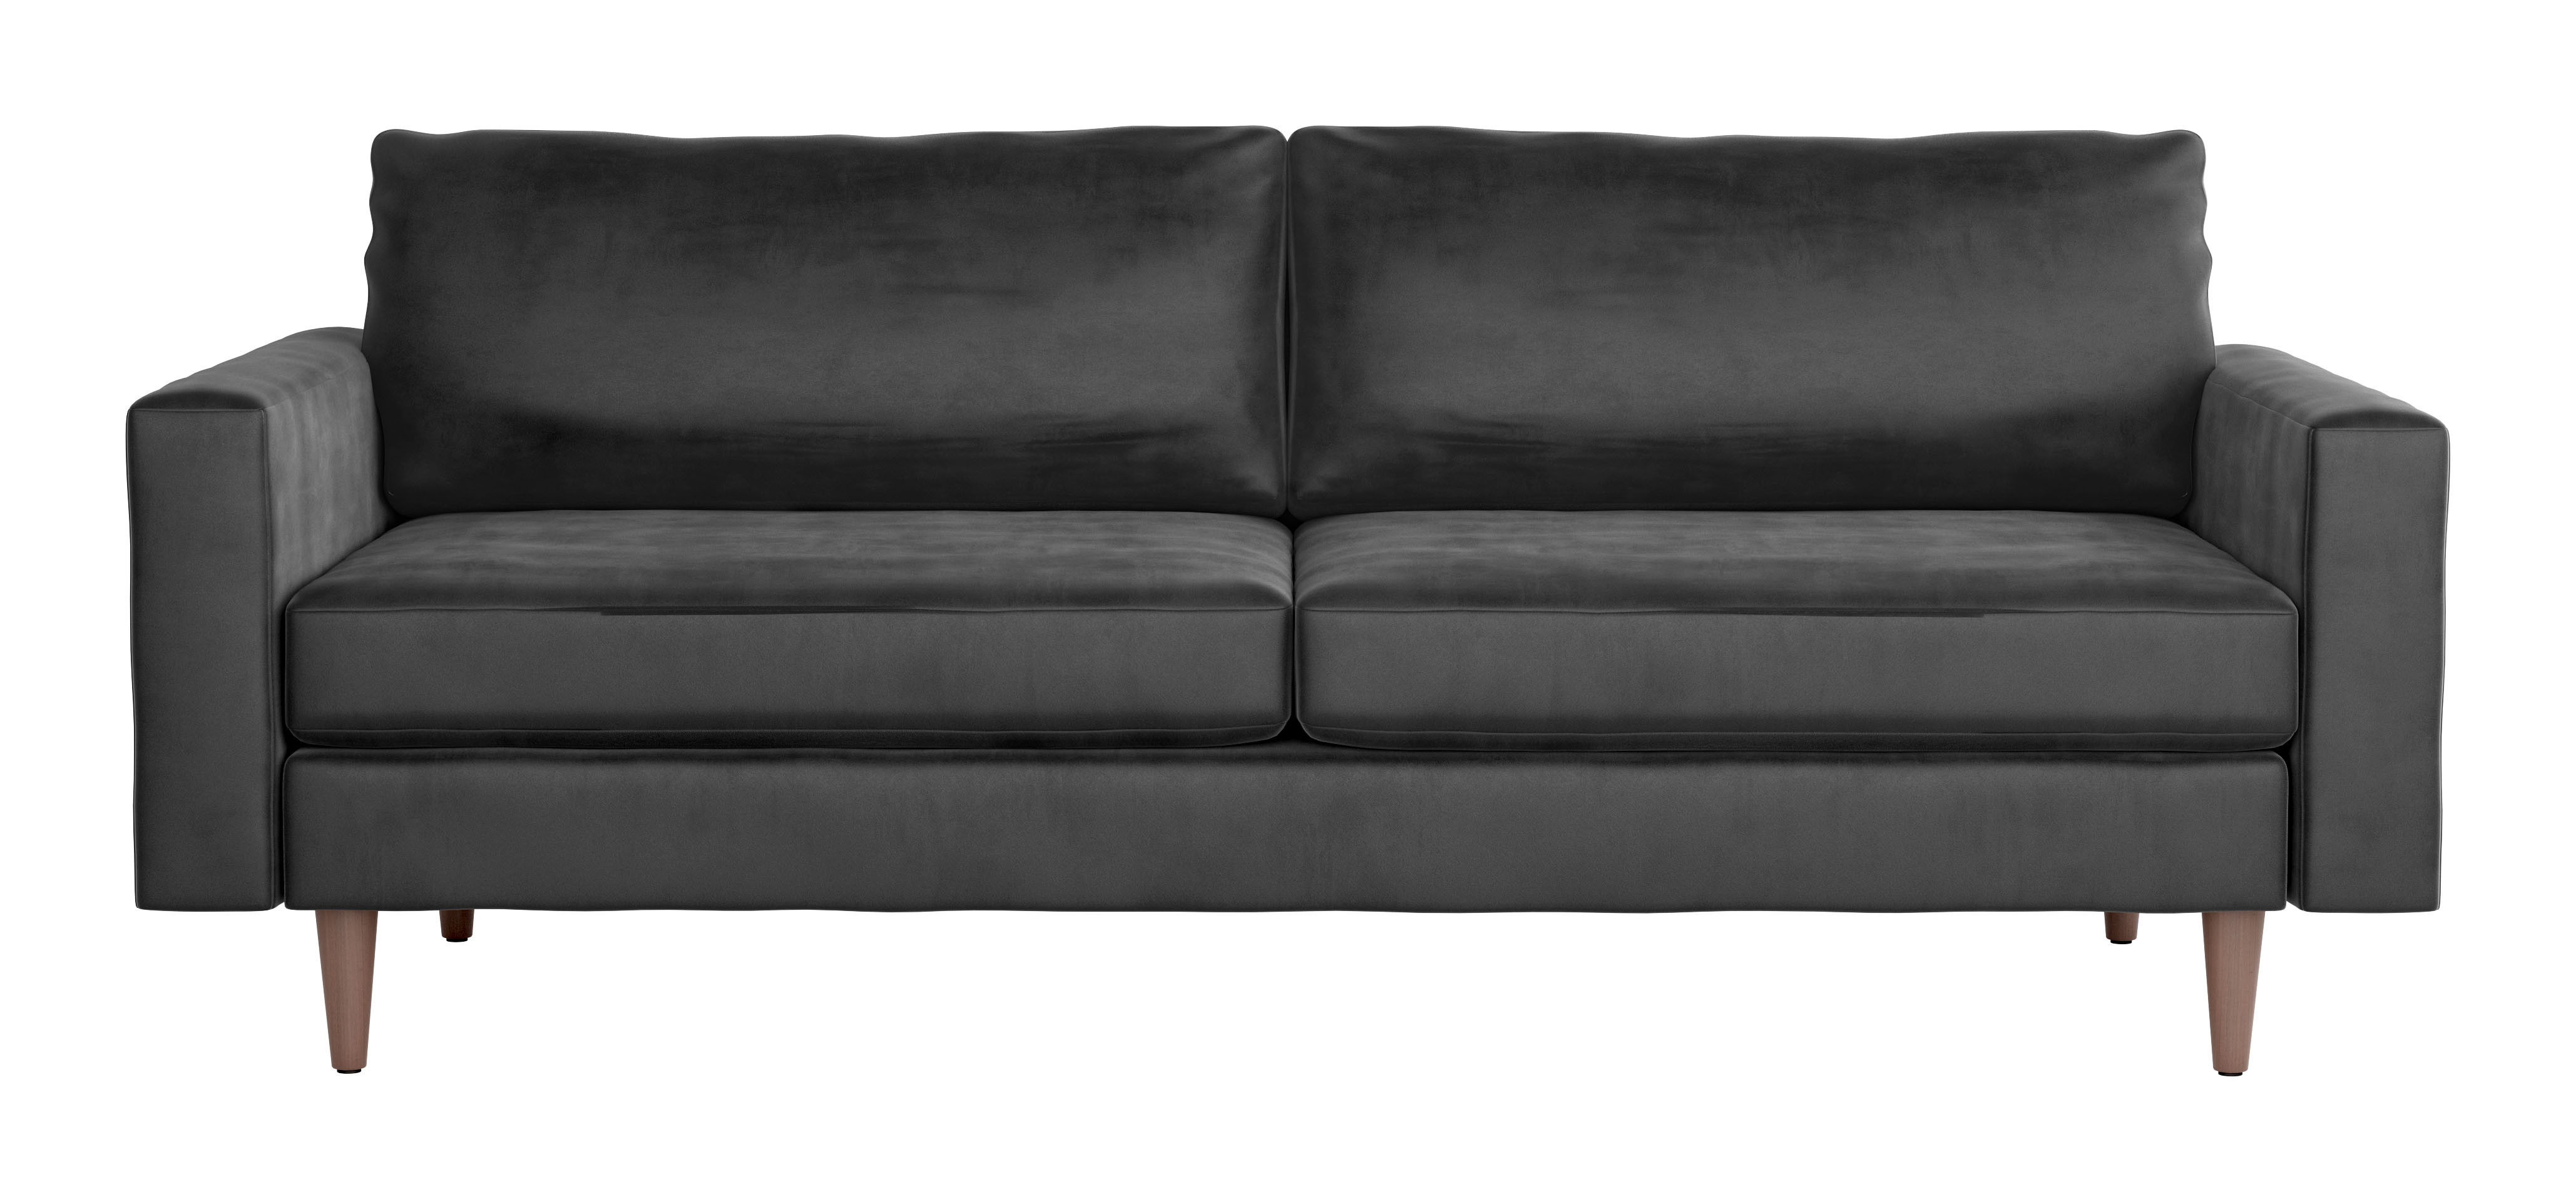 Marvelous Kace Sofa Charcoal Velvet By Zuo Modern Bralicious Painted Fabric Chair Ideas Braliciousco